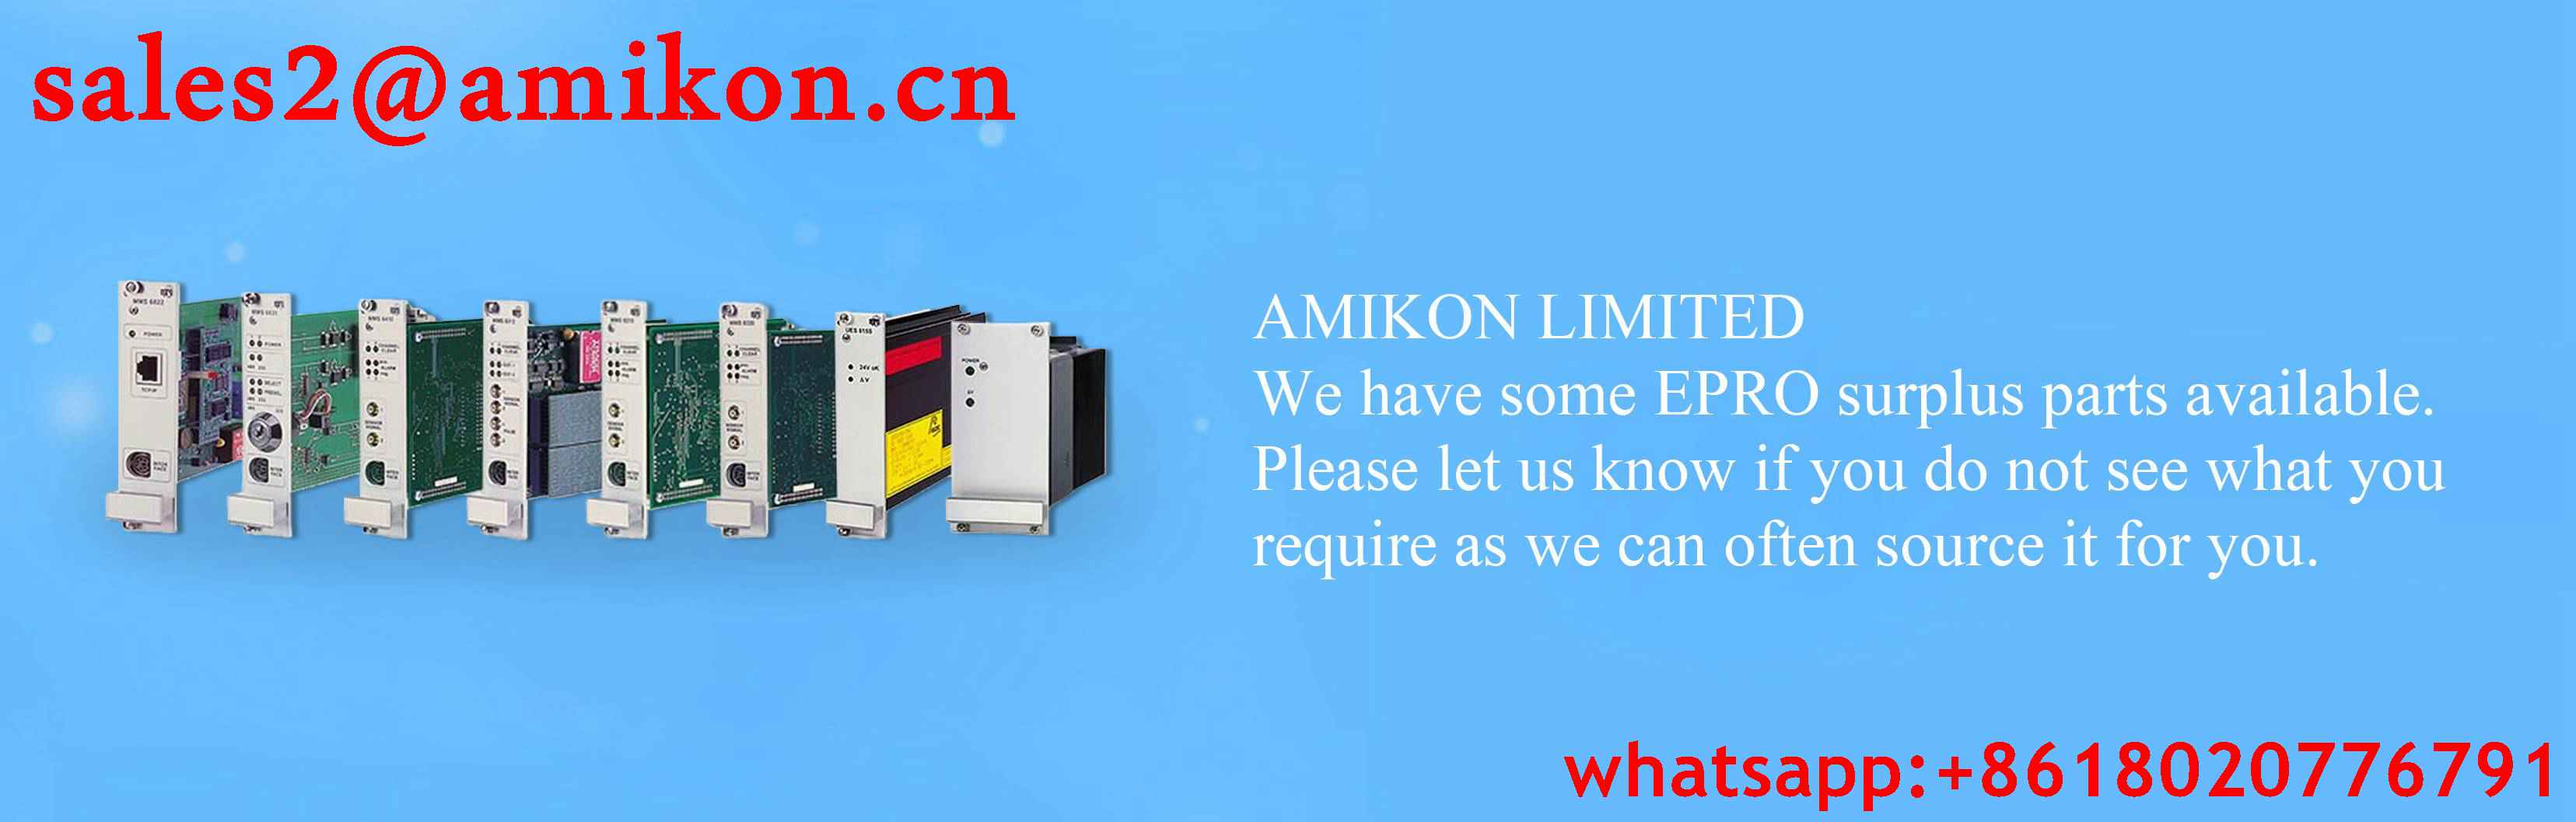 IC697CMM741 GE General Electric sales2@amikon.cn PLC DCS Industry Control System Module